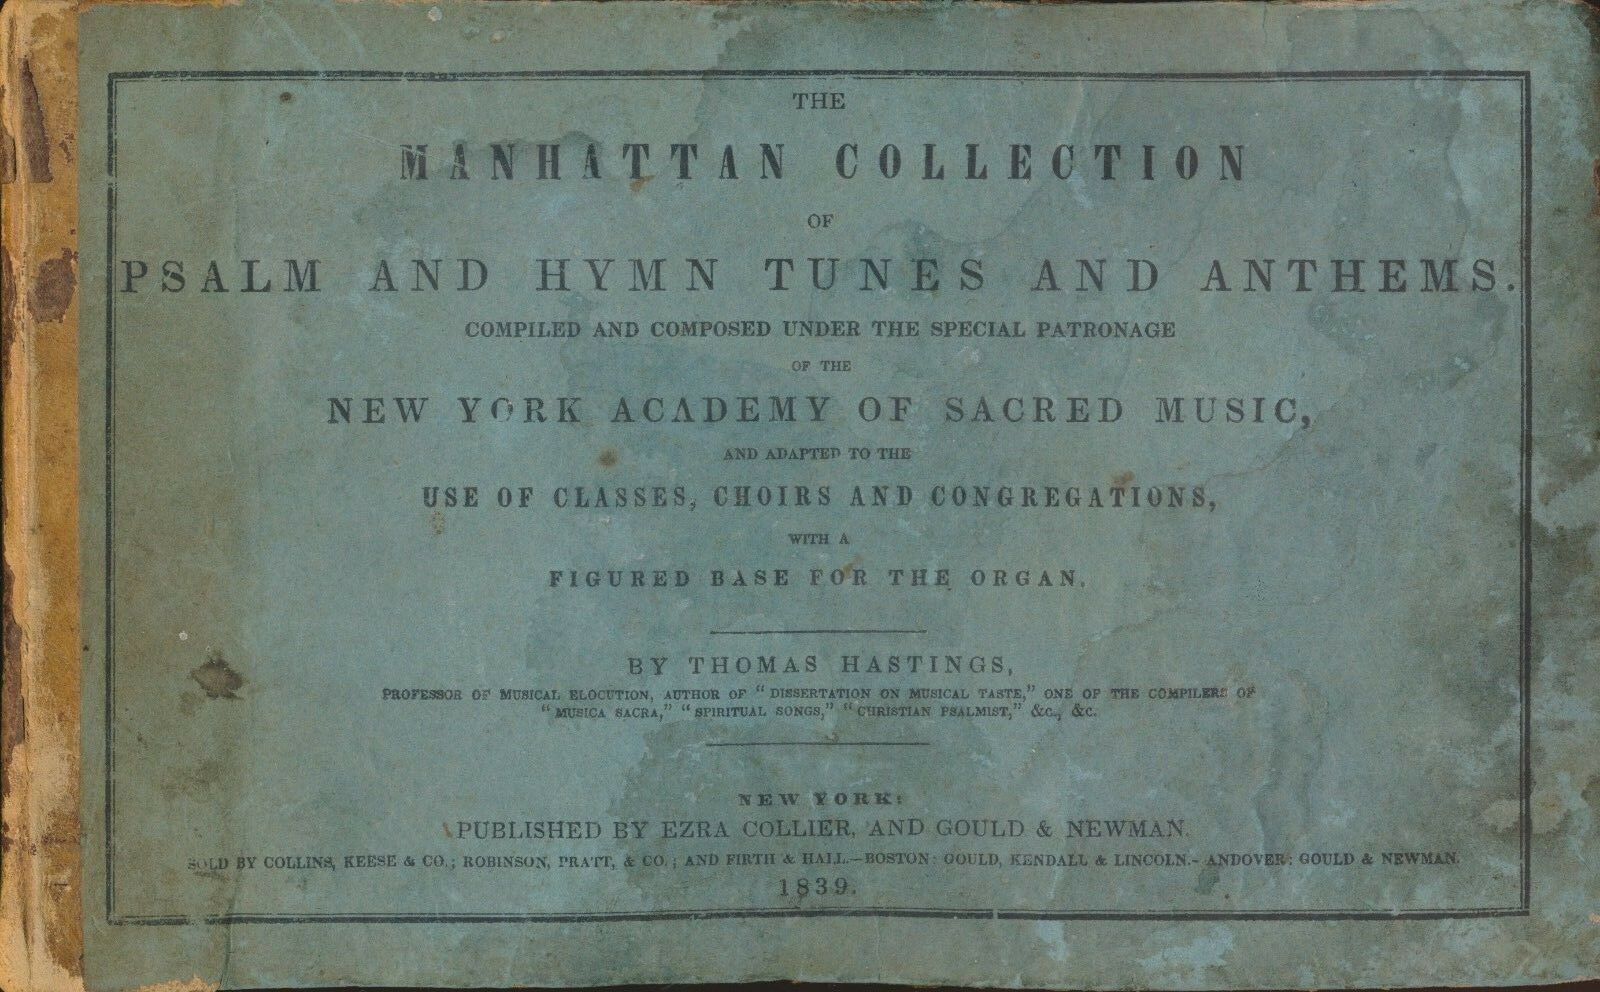 MANHATTAN COLLECTION OF PSALM AND HYMN TUNES AND ANTHEMS